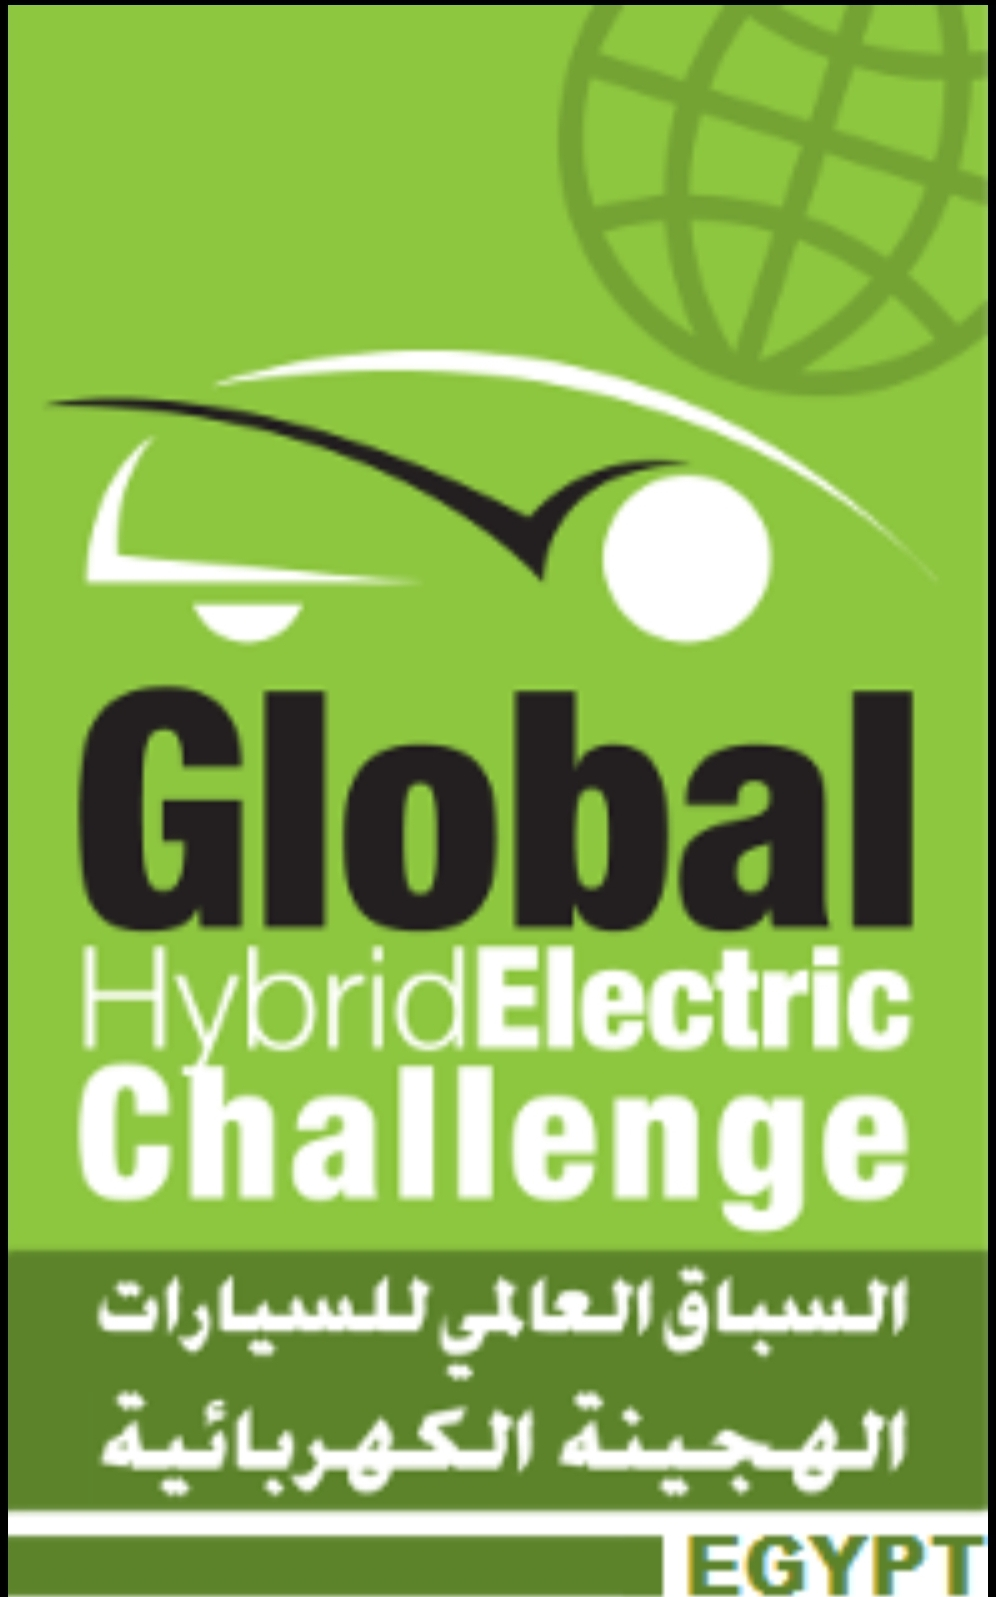 مصر تستضيف منافسات (Global Hybrid-Electric Challenge)